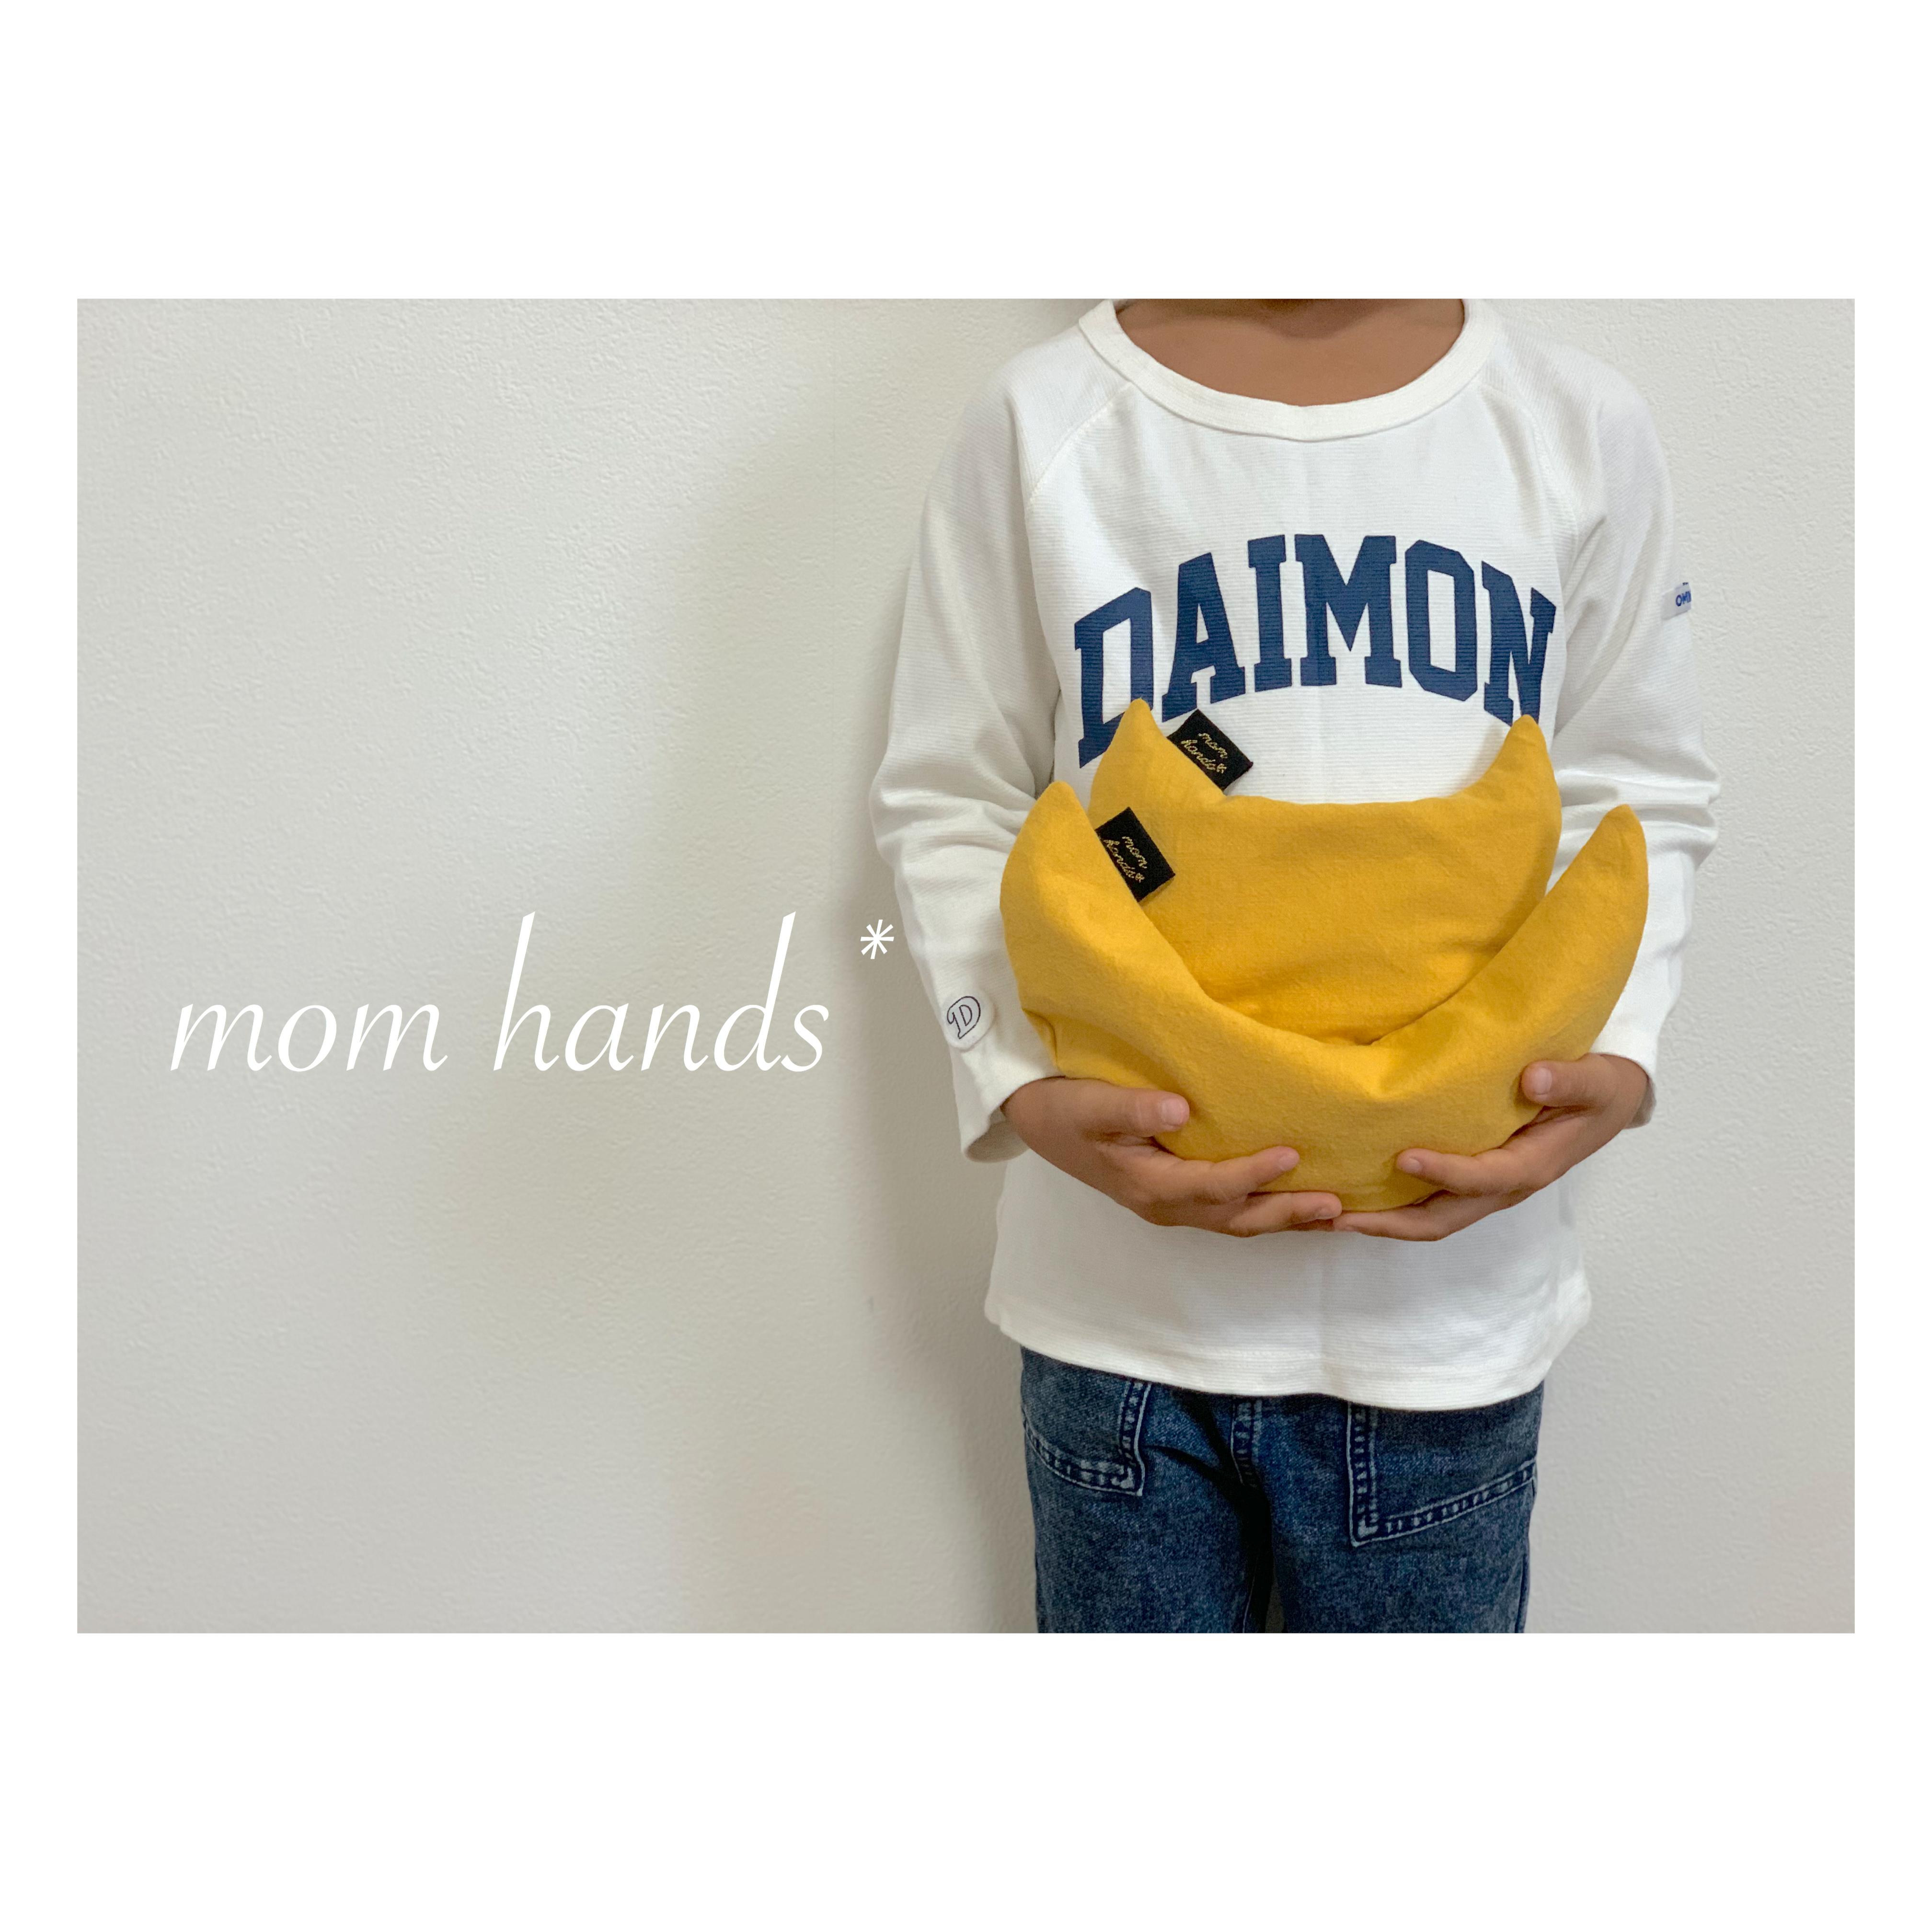 mom hands*お月様 小